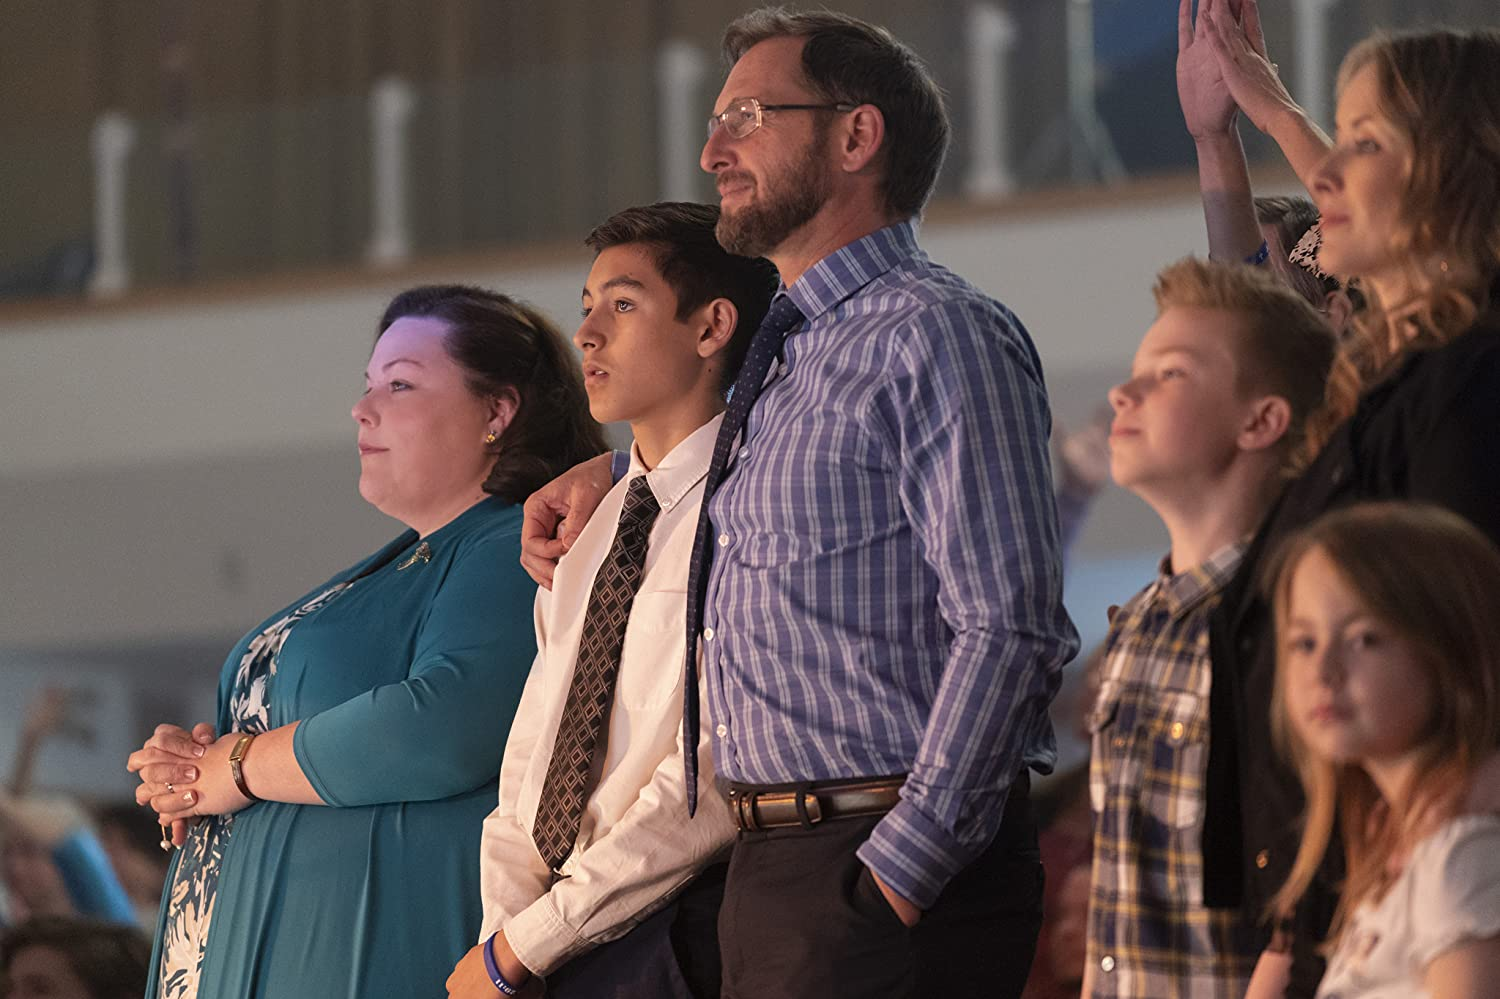 Josh Lucas, Chrissy Metz, Lisa Durupt, Logan Creran, Marcel Ruiz, and Annelise Pollmann in Breakthrough (2019)